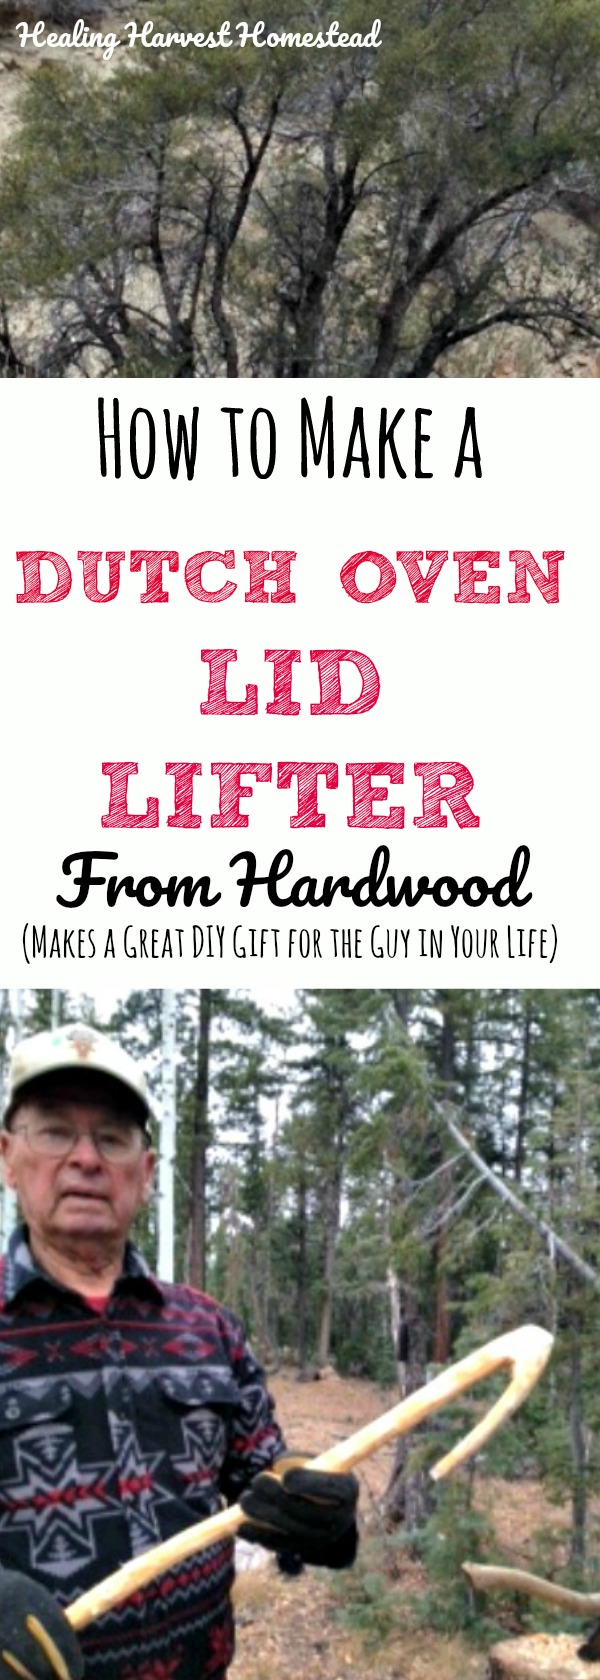 Learn how to make a Dutch oven tool by hand in the wilderness! All you need is a great hardwood branch and a hatchet. Find out a great survival skill and learn how to make your own lid lifter for your Dutch oven!